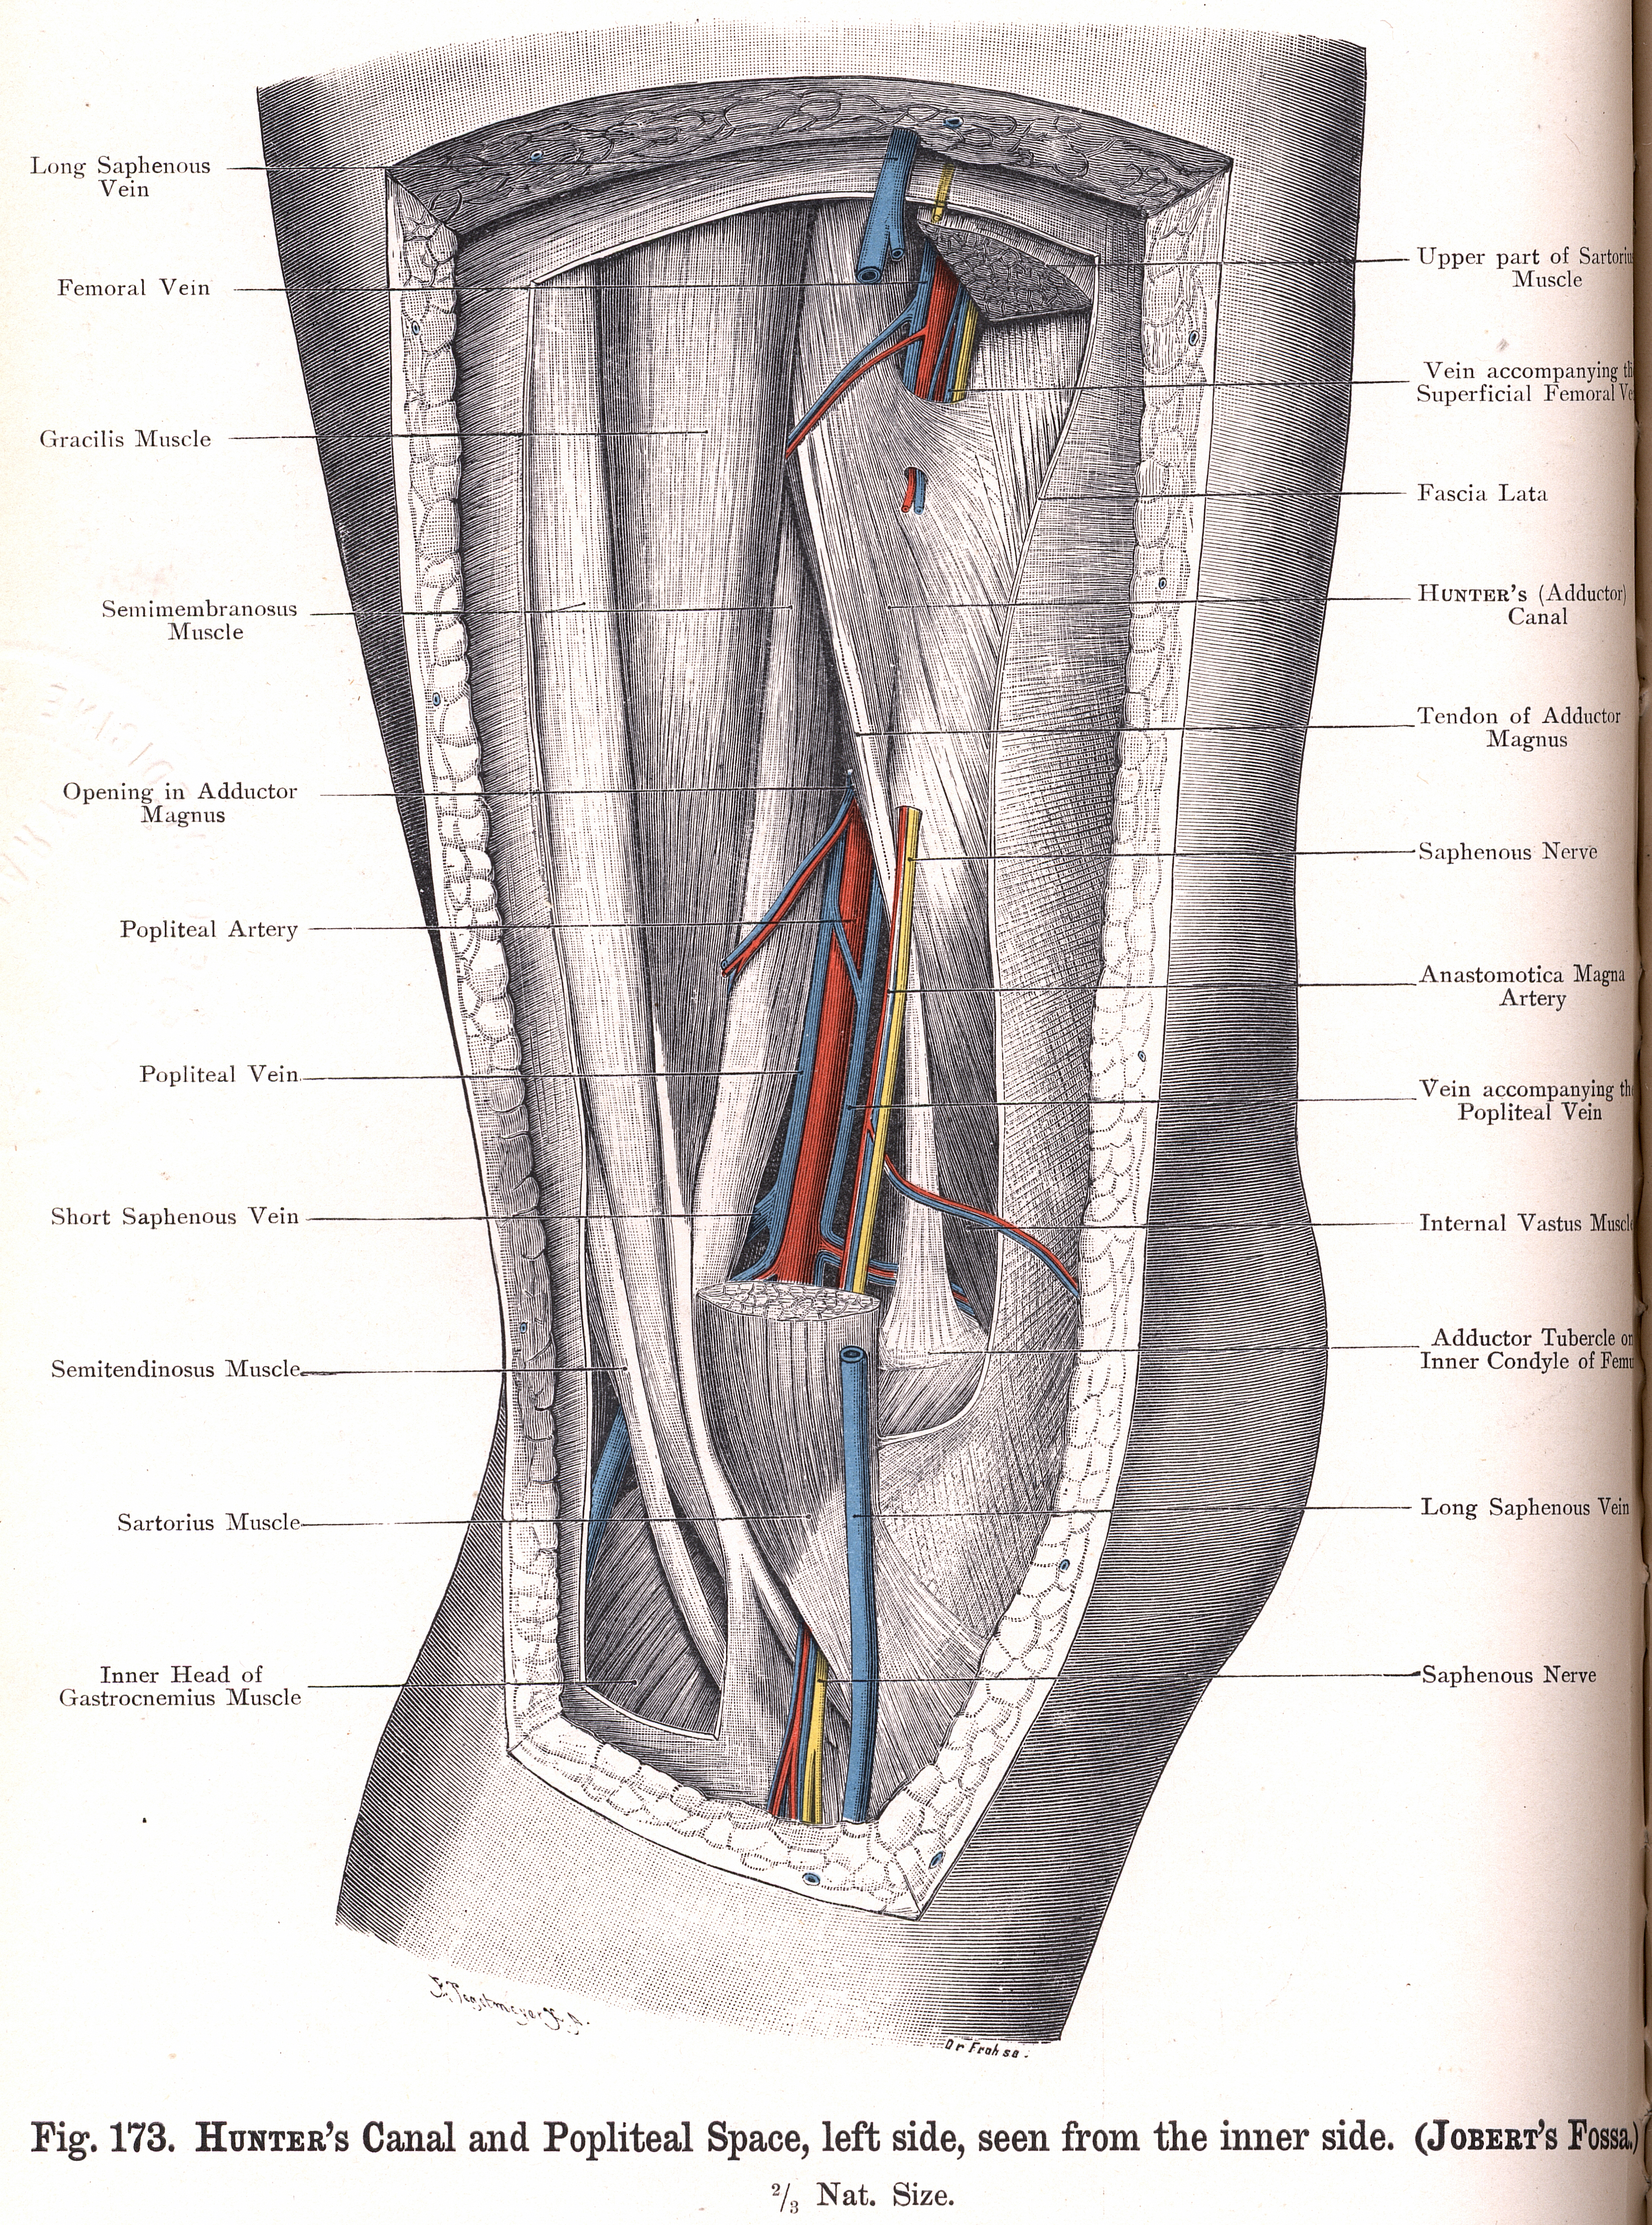 173 Hunters Canal And Popliteal Space Seen From The Inner Side